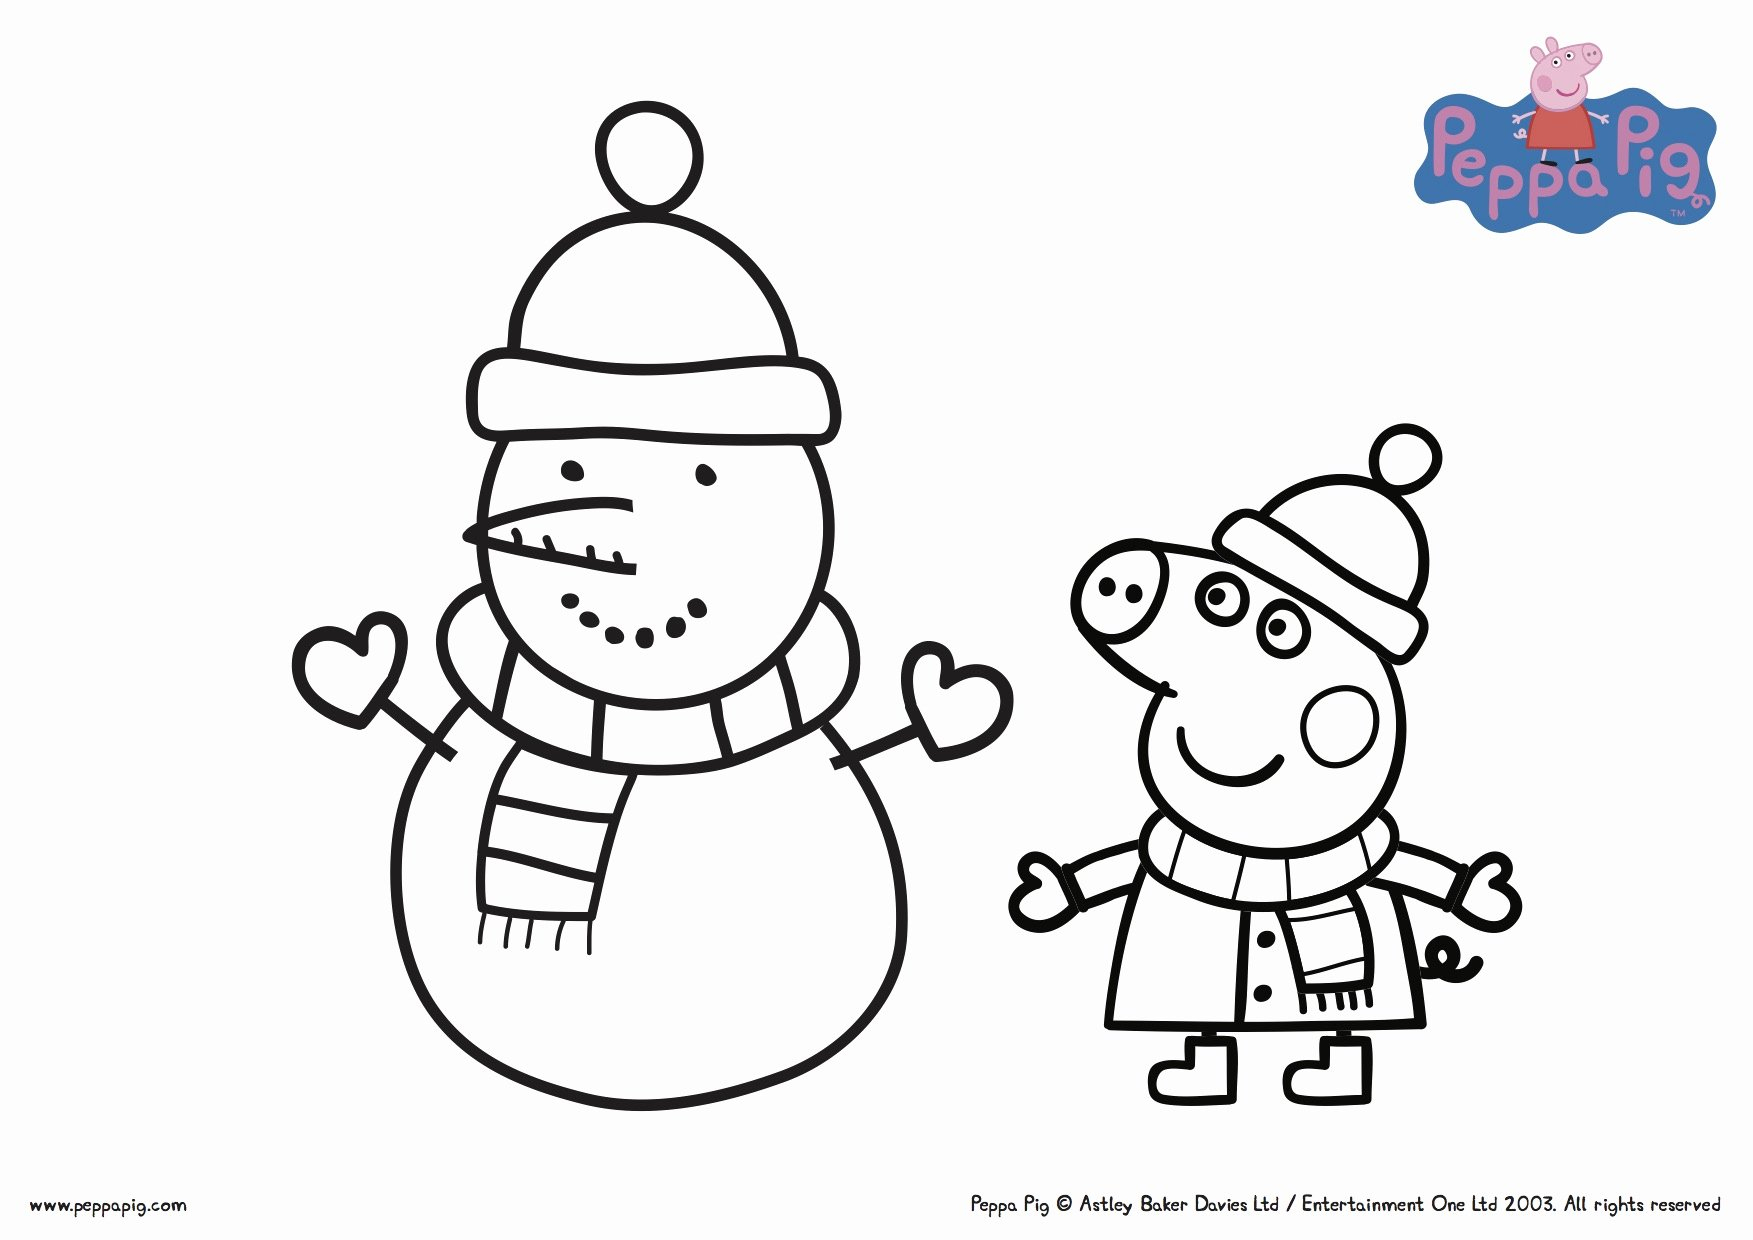 Coloring Pages : Printable Peppa Pig Coloring Fresh Pictures dedans Peppa Pig A Colorier